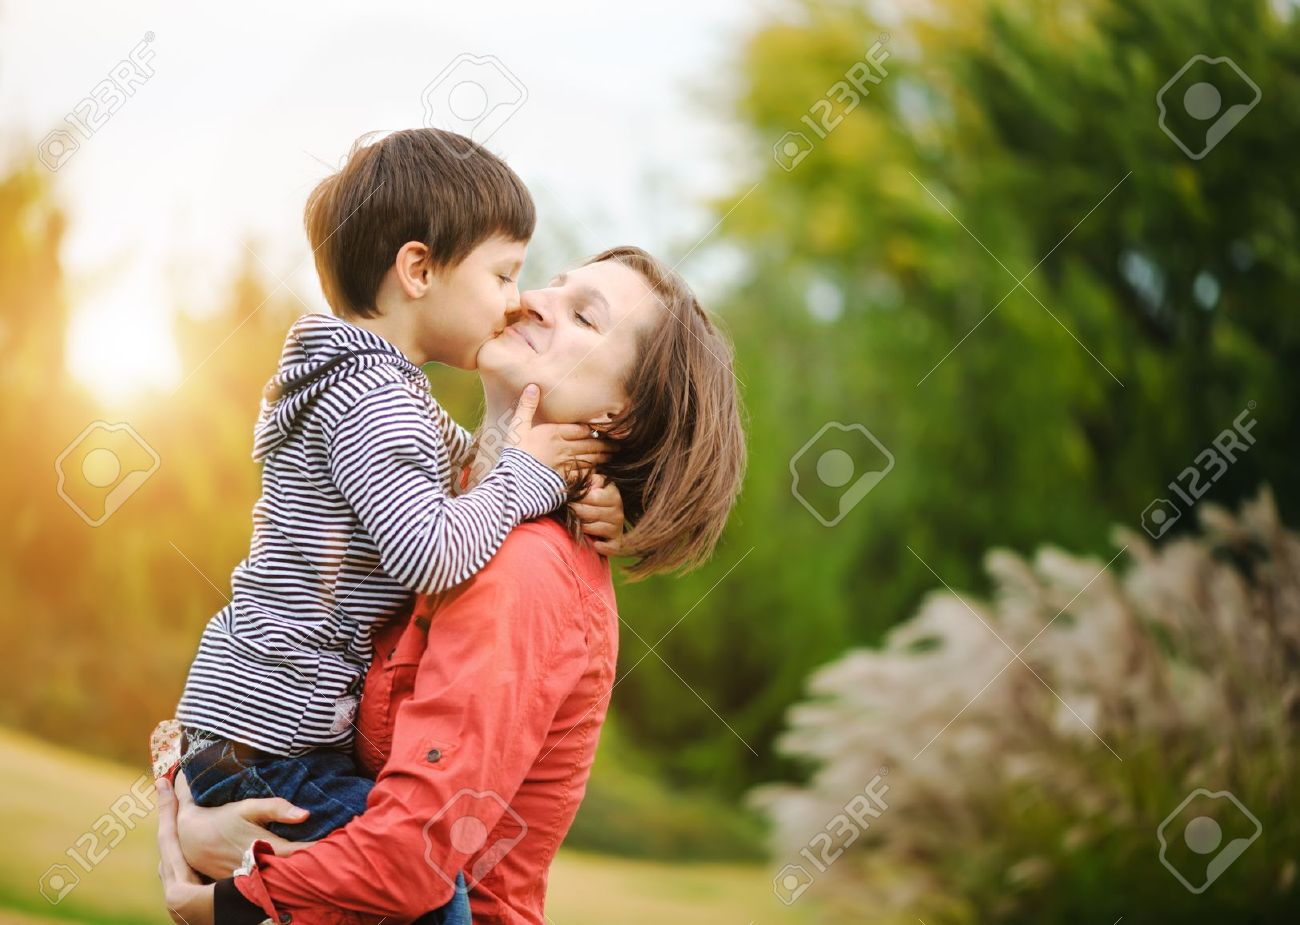 16064884-Son-is-kissing-his-mother-Stock-Photo-child